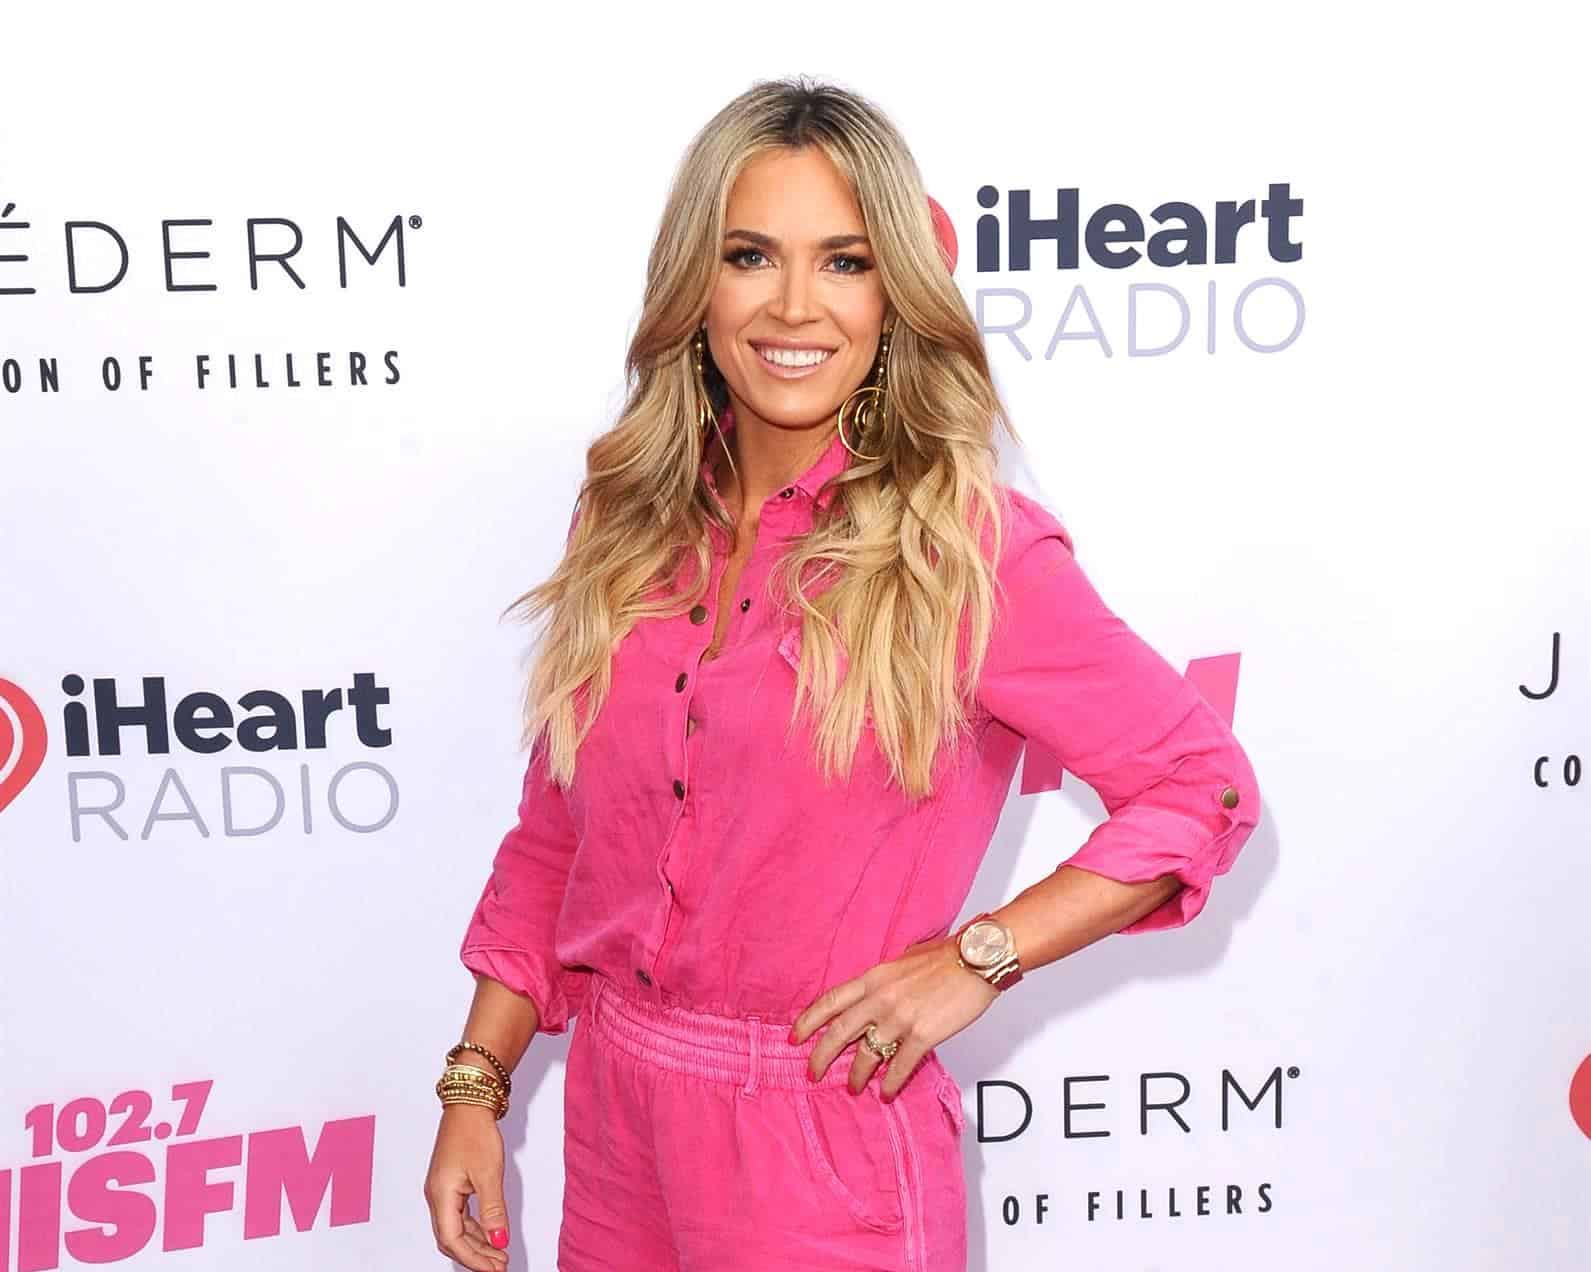 RHOBH Star Teddi Mellencamp Reveals Her Due Date for Baby #3, Shows Photos of Her Fitness Progress Through Her Pregnancy